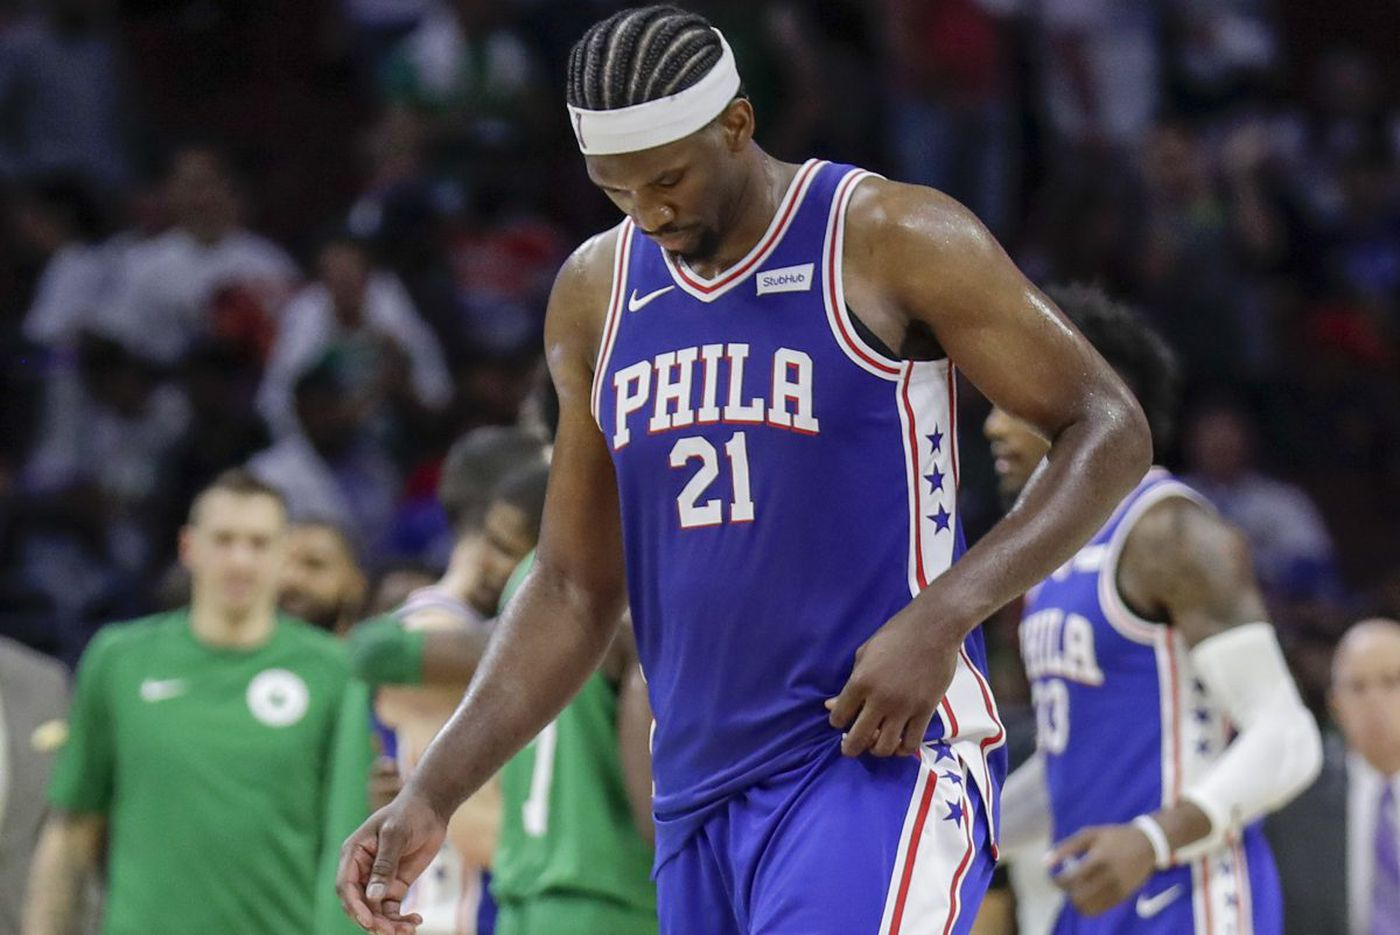 Embiid, Sixers feel the moment, but come up short in home-opening loss